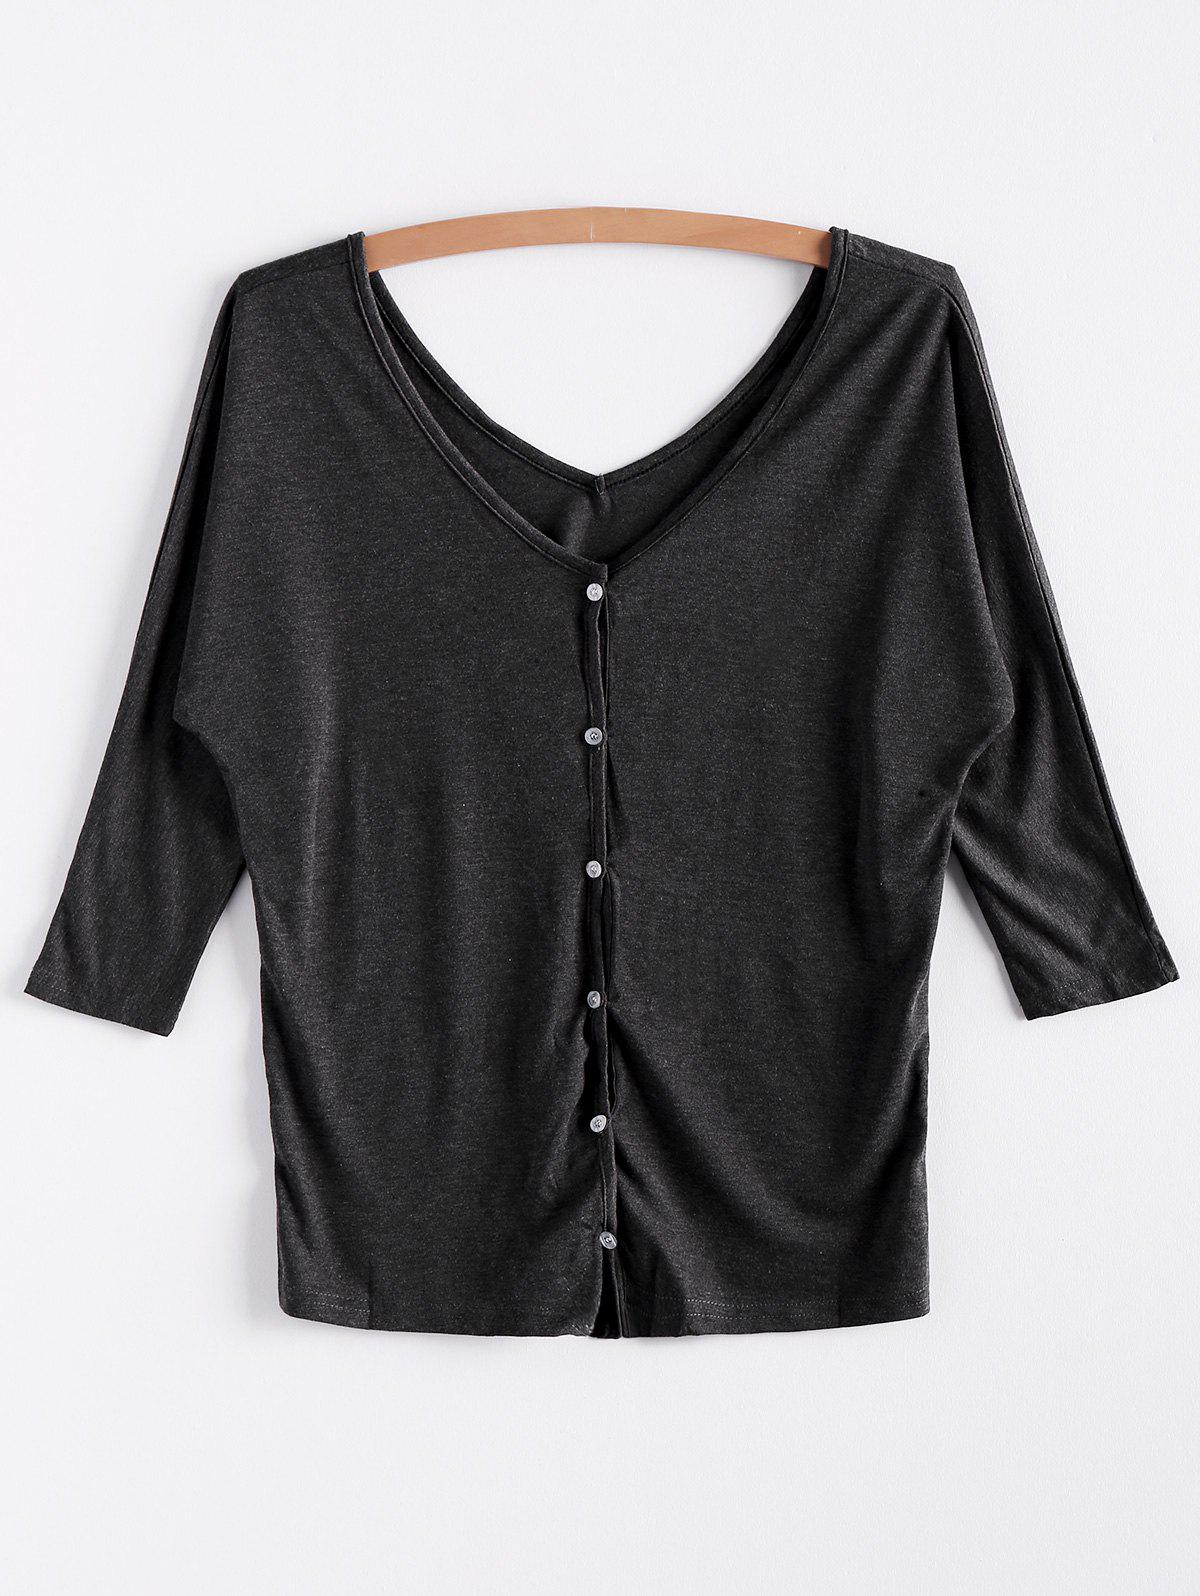 V-Neck Three Quarter Sleeve Gray Womens CardiganWOMEN<br><br>Size: ONE SIZE; Color: GRAY; Type: Cardigans; Material: Polyester; Sleeve Length: Three Quarter; Collar: V-Neck; Style: Casual; Pattern Type: Solid; Season: Winter; Weight: 0.230kg; Package Contents: 1 x Cardigan;